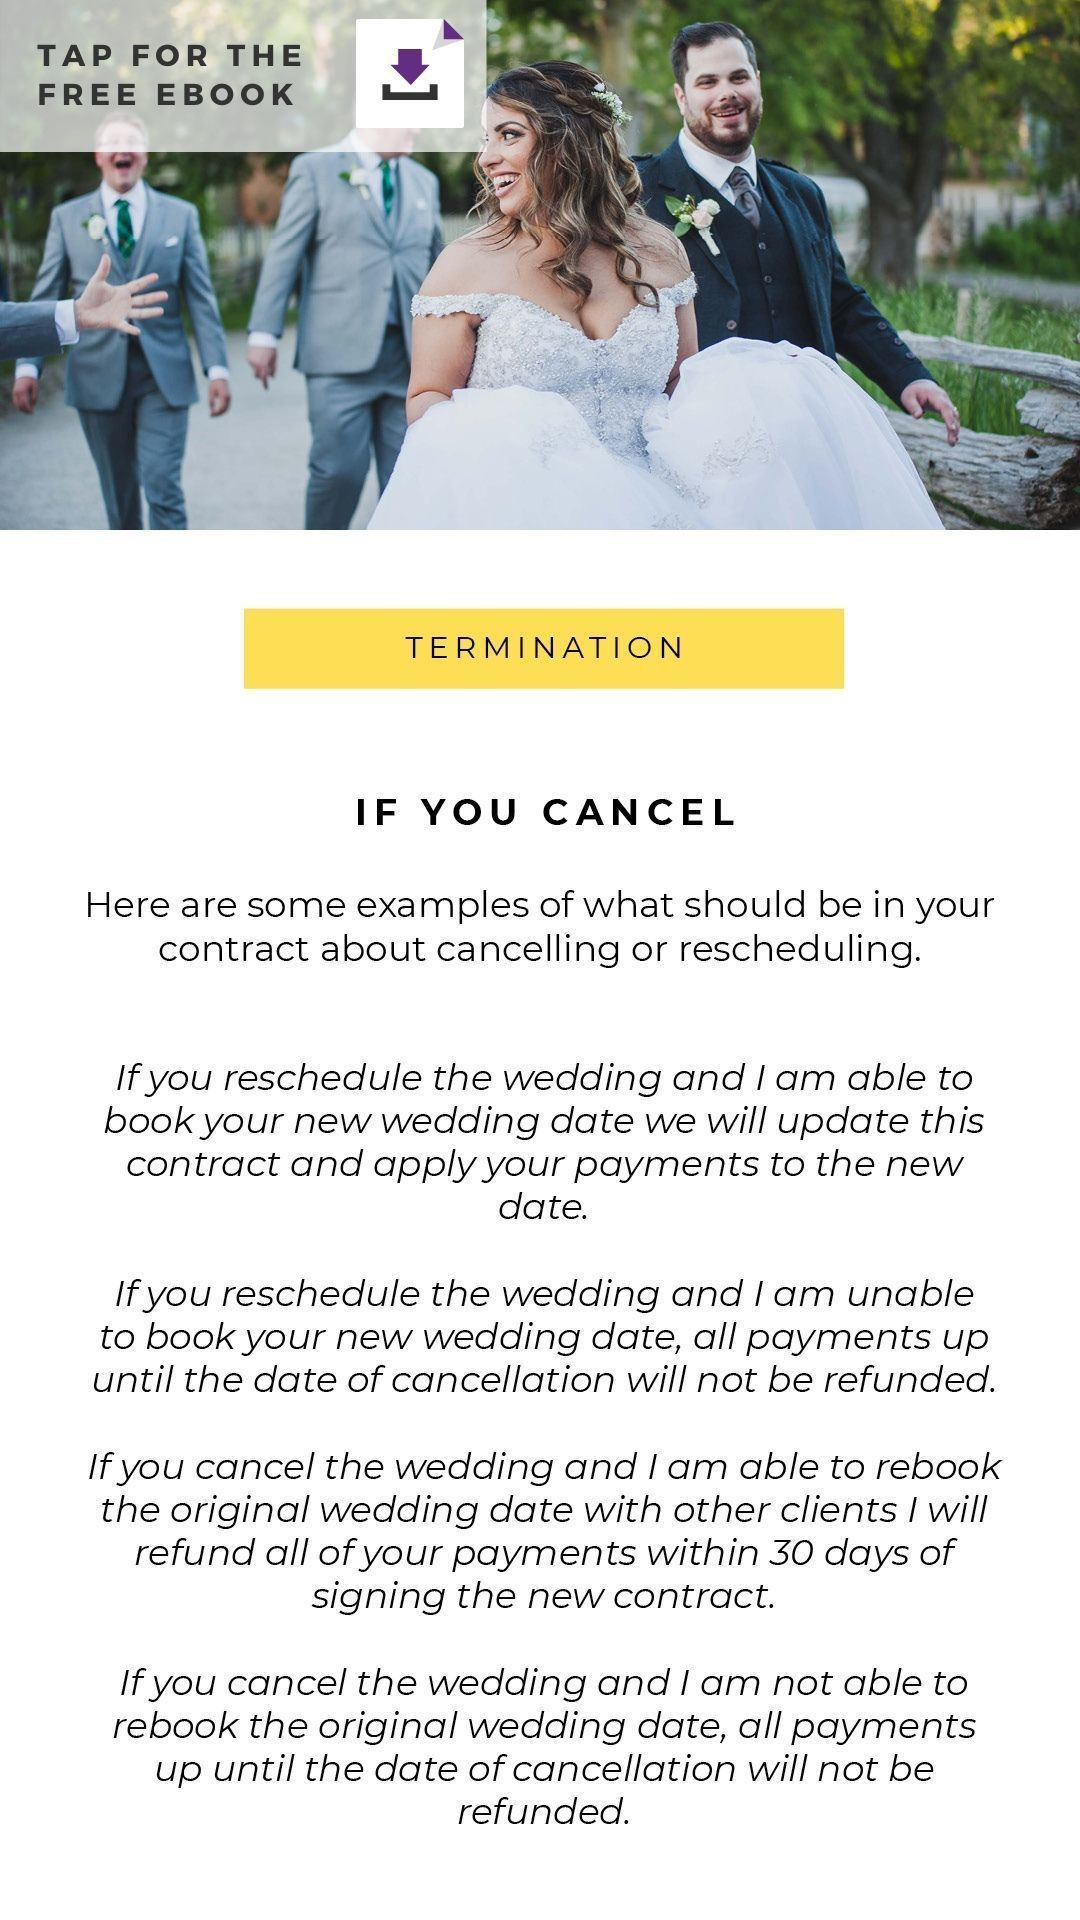 001 Outstanding Wedding Photography Contract Template Canada Idea Full